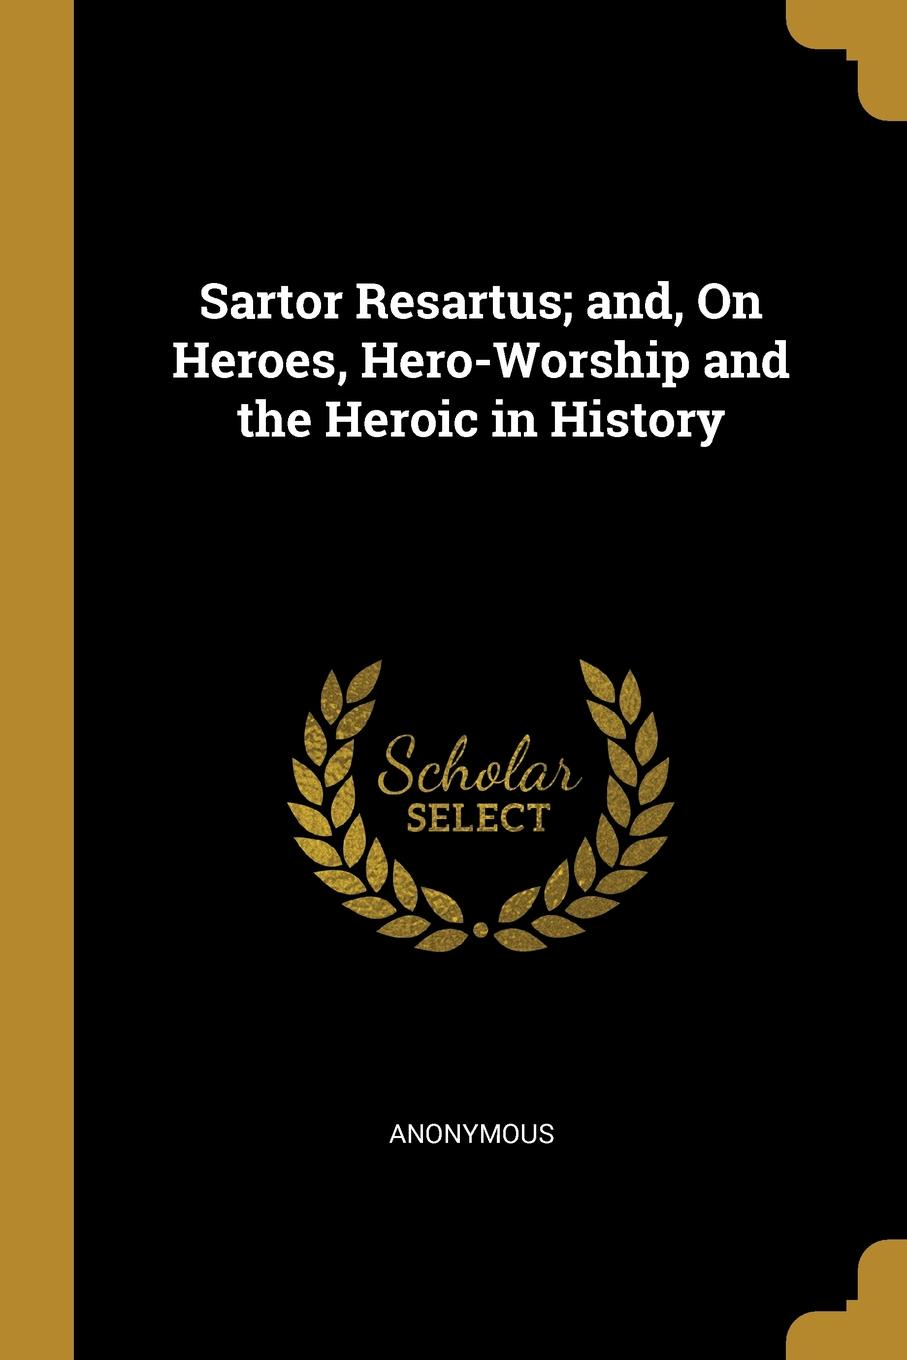 M. l'abbé Trochon Sartor Resartus; and, On Heroes, Hero-Worship and the Heroic in History томас карлейль sartor resartus and on heroes hero worship and the heroic in history